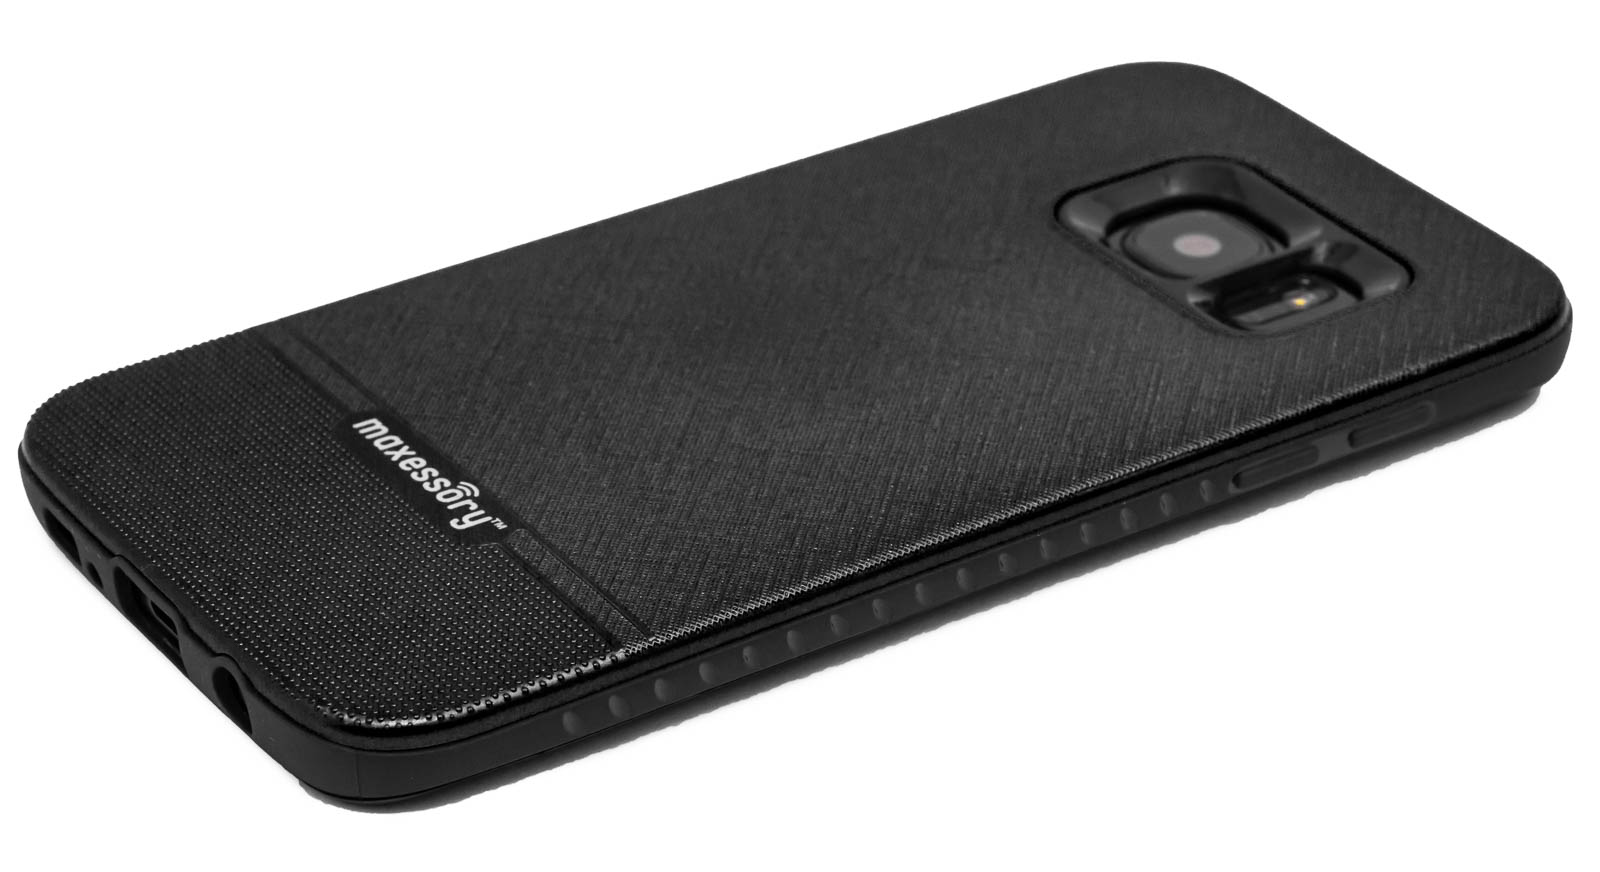 Samsung-Galaxy-S7-Edge-Case-Ultra-Thin-Hard-Body-Tactile-Shell-Cover thumbnail 5